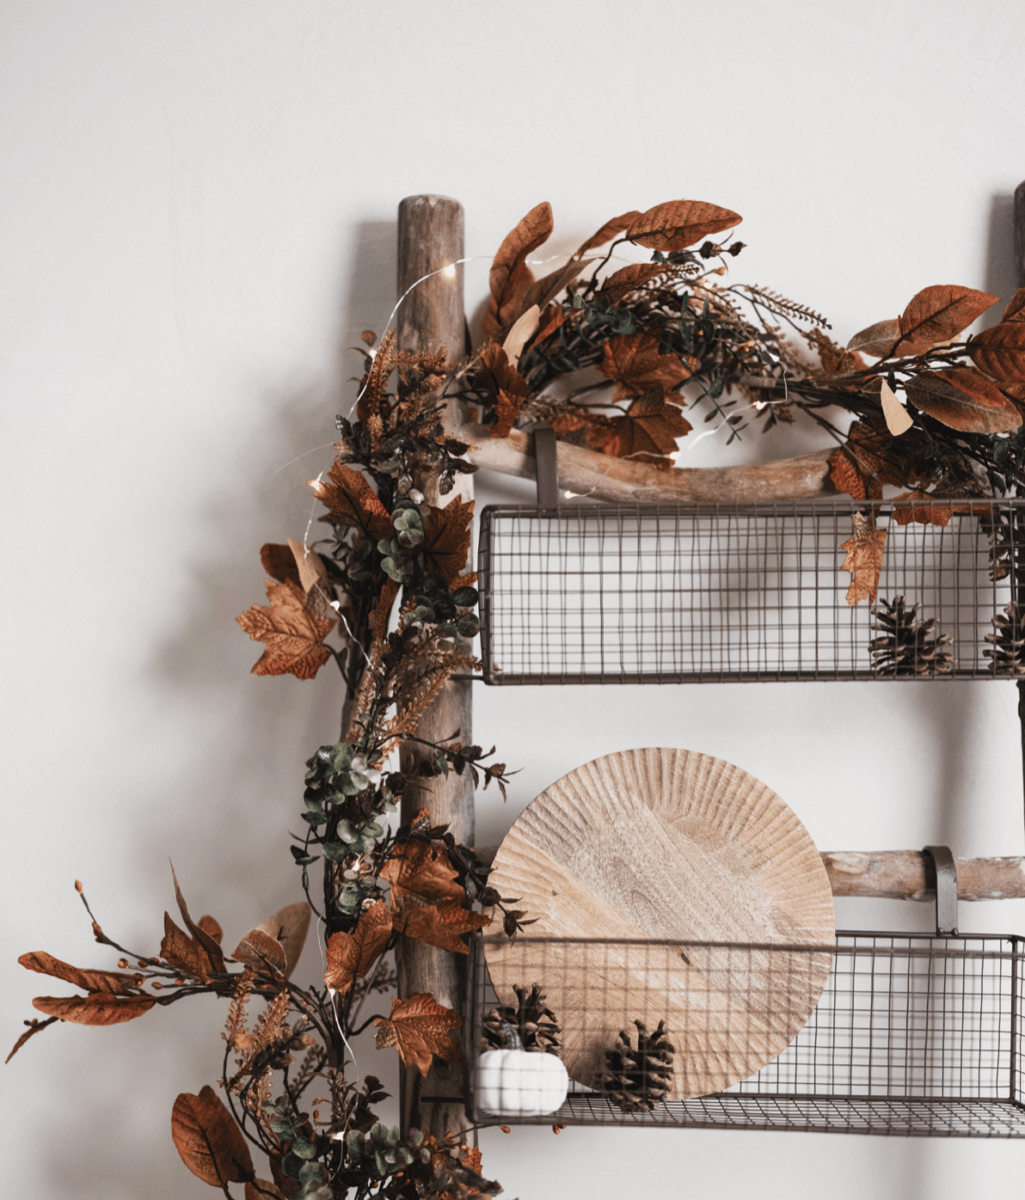 Silver Mushroom Label Rustic Wooden Ladder With Wire Baskets